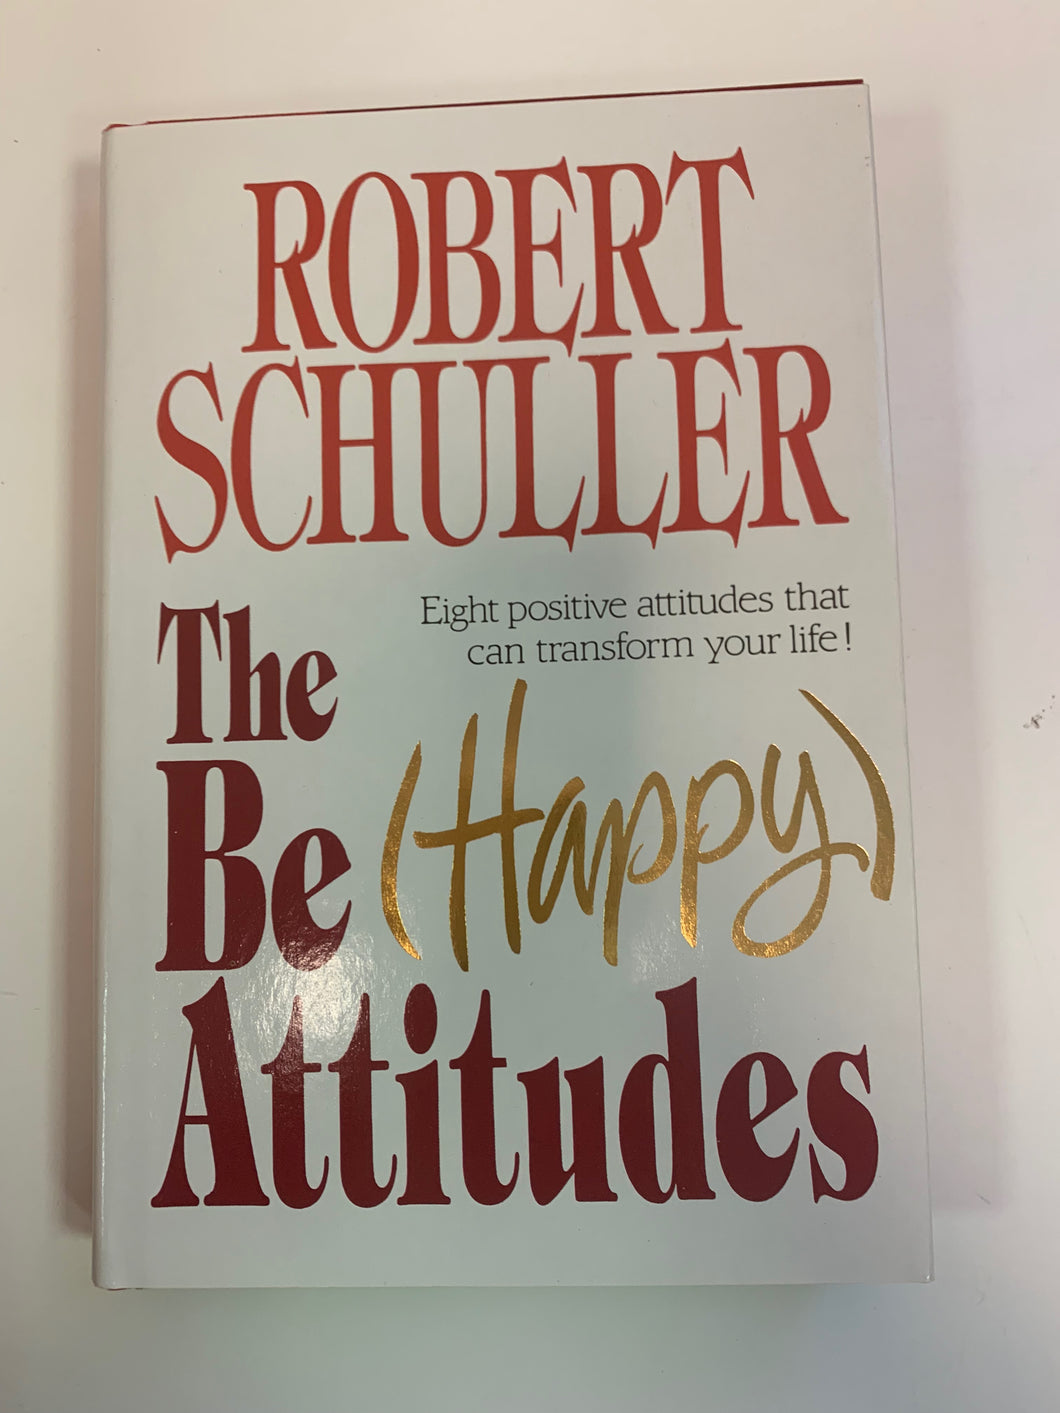 The Be (Happy) Attitudes by Robert Schuller